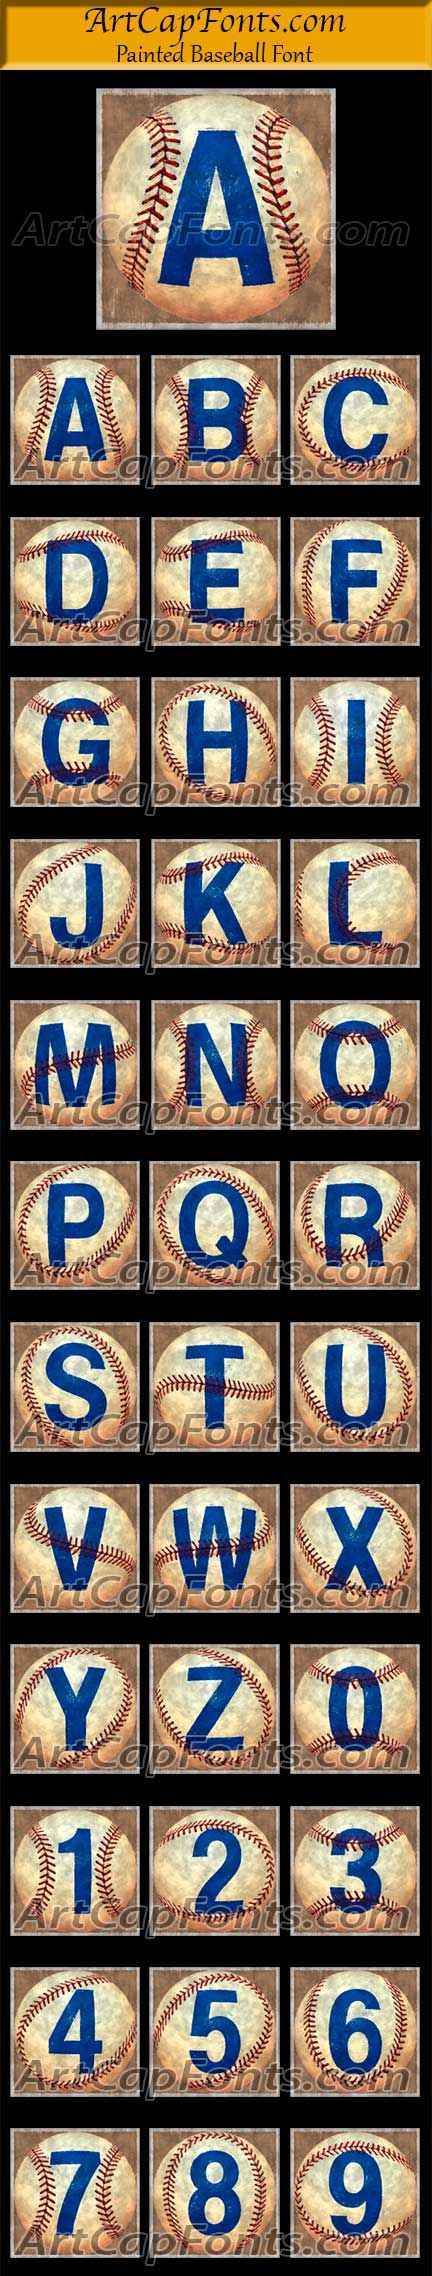 Painted Baseball Font from ArtCapFonts.com Monogram Set or Drop Cap Capital Letters & Numbers: This illustration of letters painted on a baseball can be used in Power Point, monogram, in a scrapbook, printed on a greeting card, as a bullet point to define a list, as a drop cap to start the first word of a blog or spell out a word for a poster. They can also be transformed into an embroidery image,